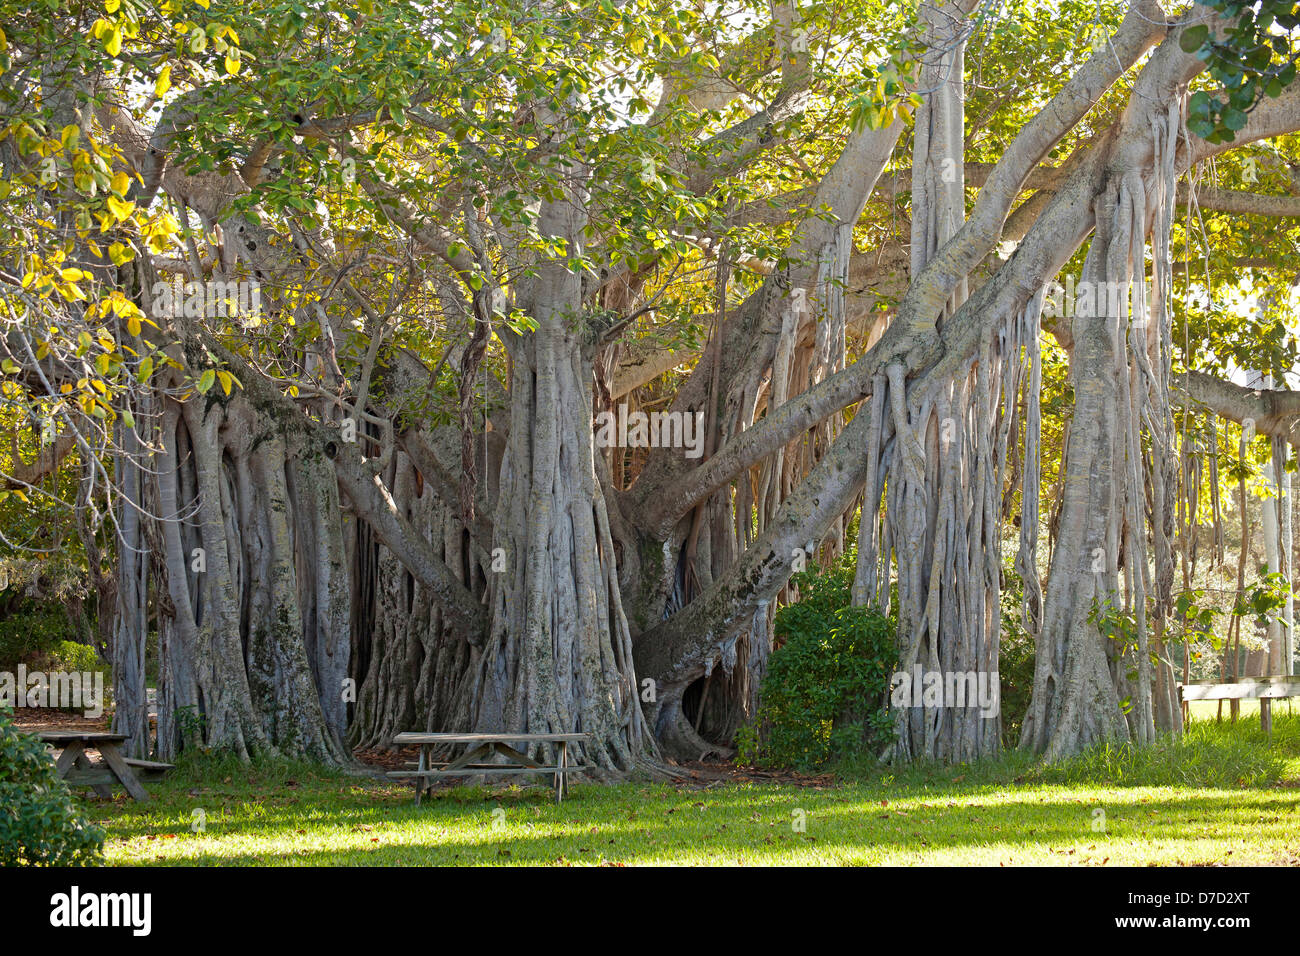 giant Ficus lofty fig at Hugh Taylor Birch State Park in Fort Lauderdale, Brower County, Florida, USA - Stock Image